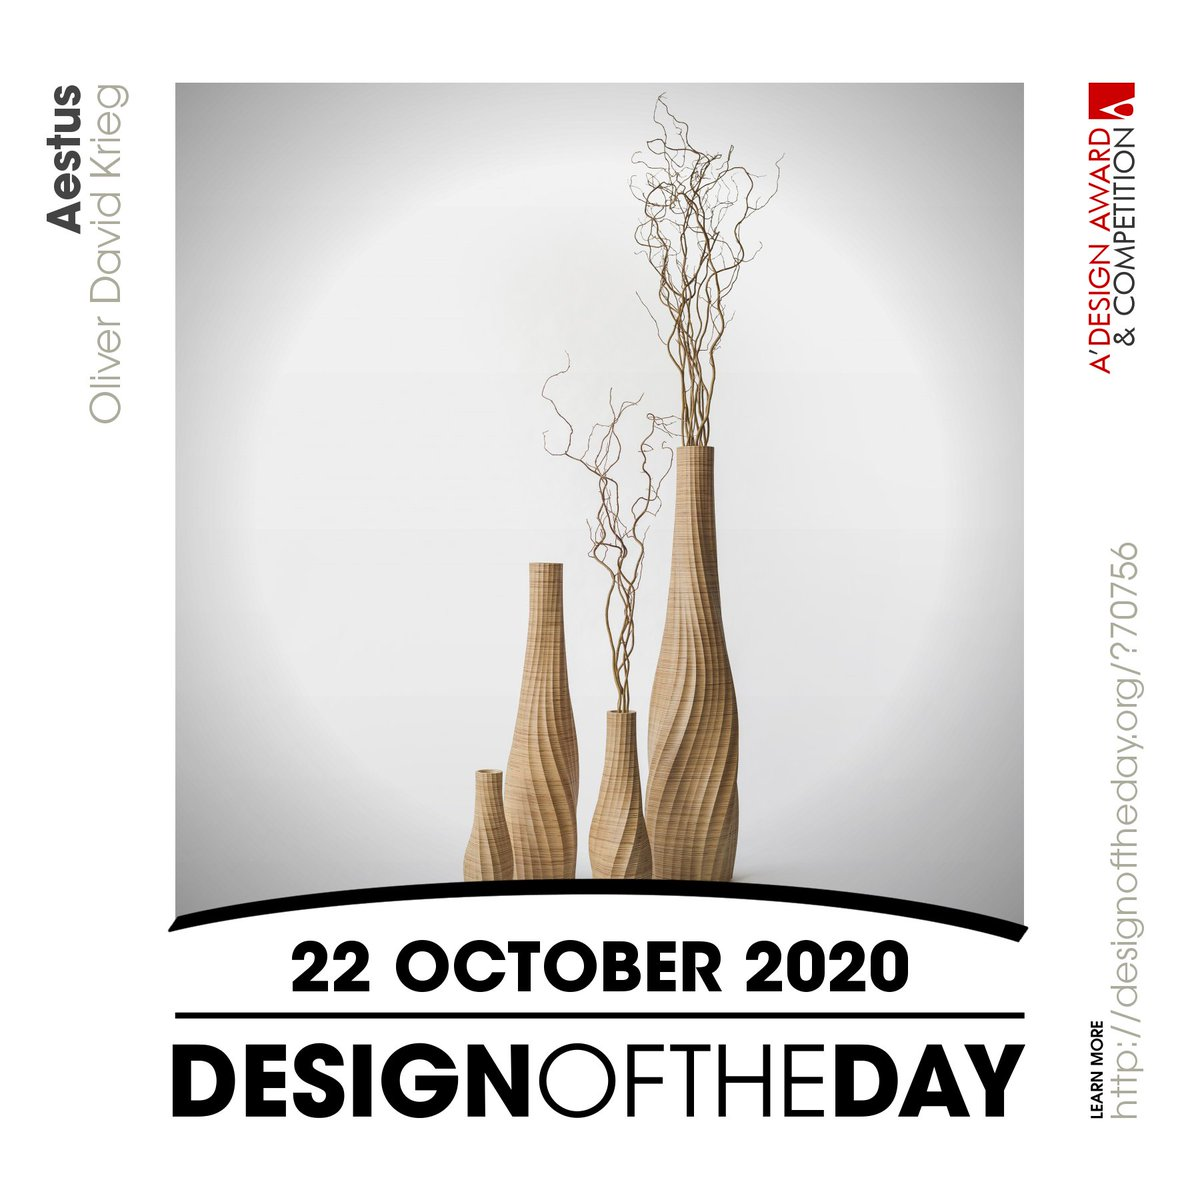 Congrats to Oliver David Krieg - @odkdesign, the creator behind the Design of the Day of 22 October 2020 - Aestus Vase. Check out this great work now. We are currently featuring it at https://t.co/qxAVfJ7rNh #designoftheday https://t.co/7yXcW7xeTg